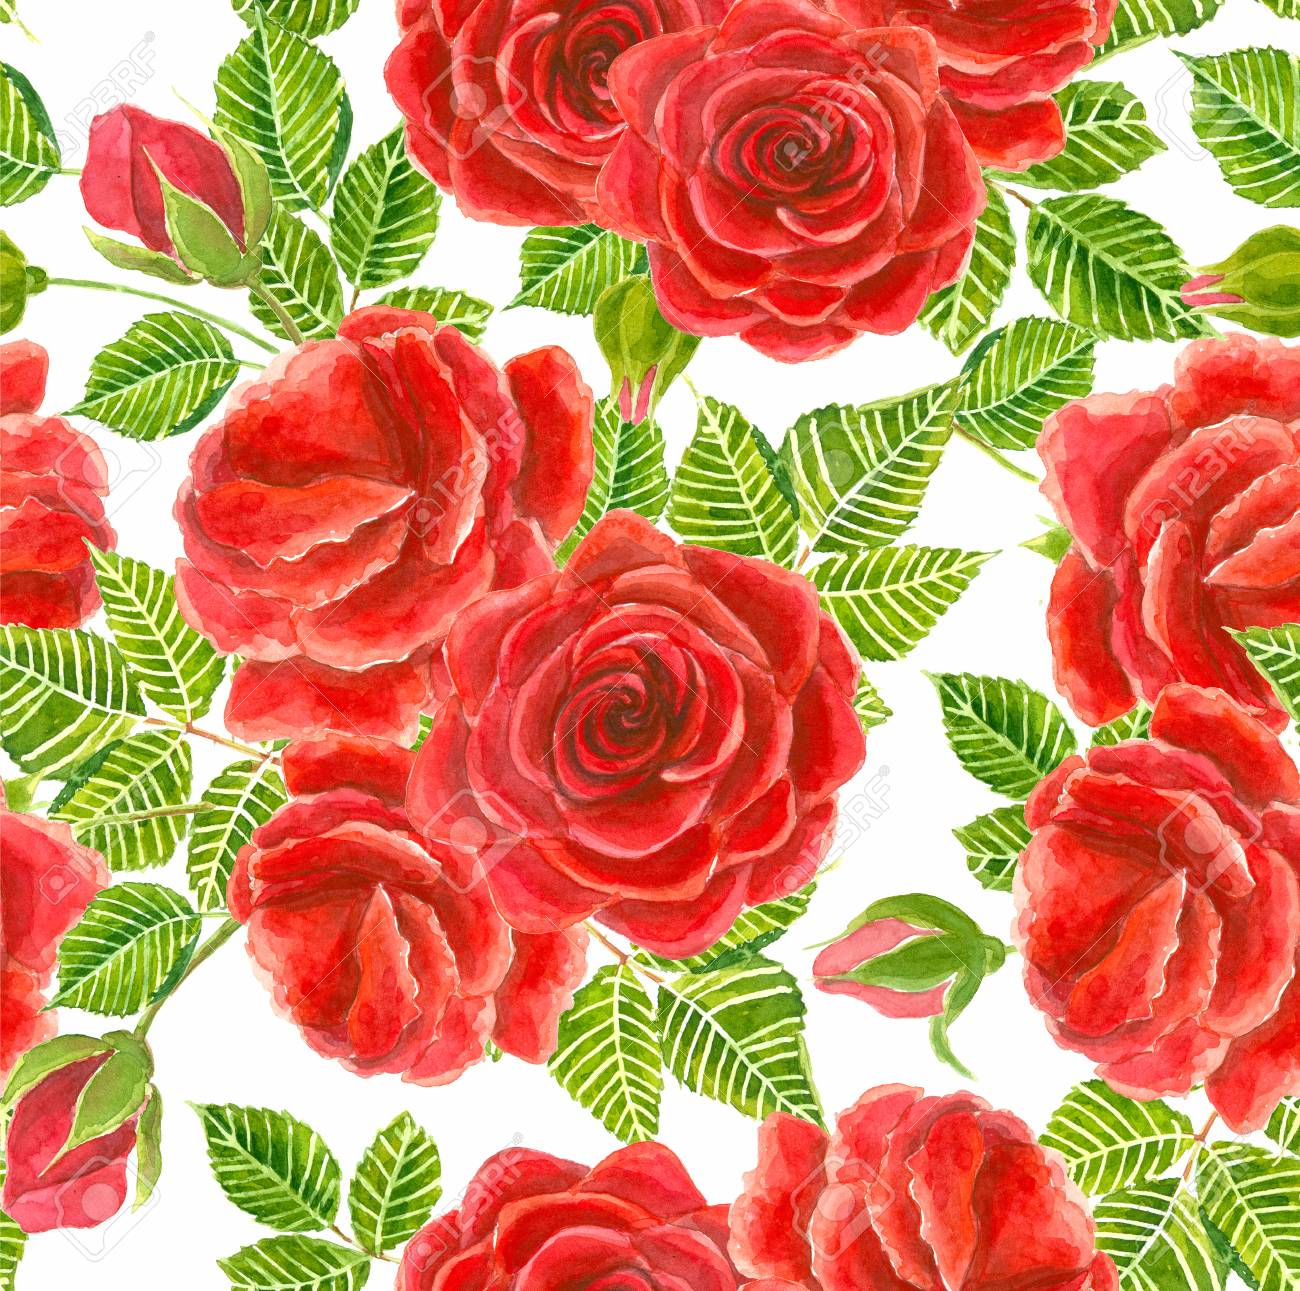 Red Roses With Leaves And Buts Painted In Watercolor. Seamless ...